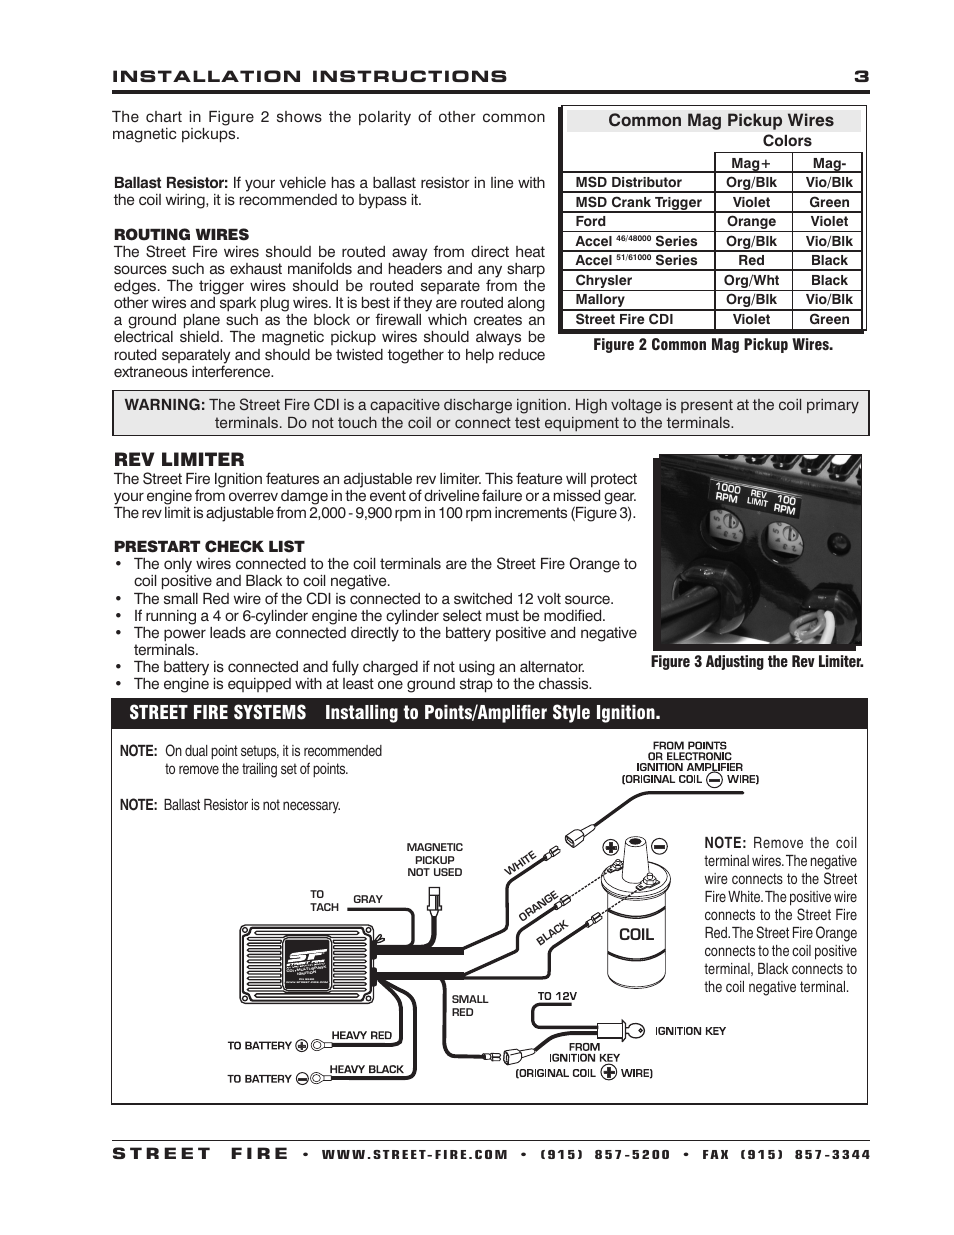 Mallory High Fire Wiring Diagram With Rev Limiter Library Common Mag Pickup Wires Msd 5520 Street Ignition Control Installation User